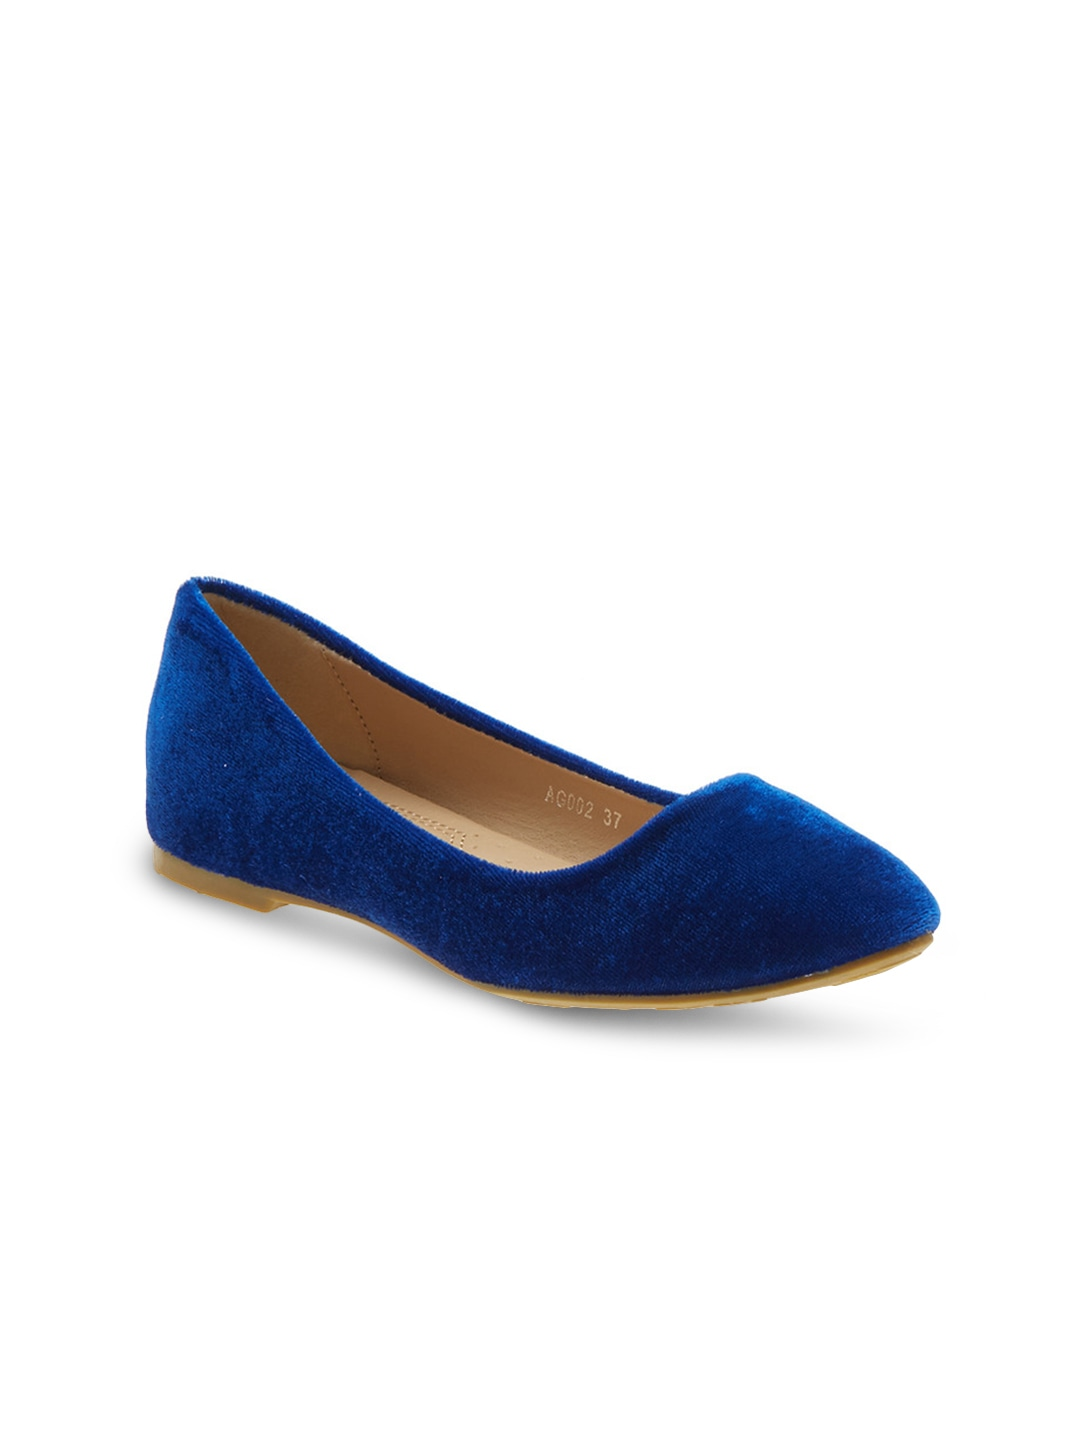 Blue Solid Suede Ballerinas